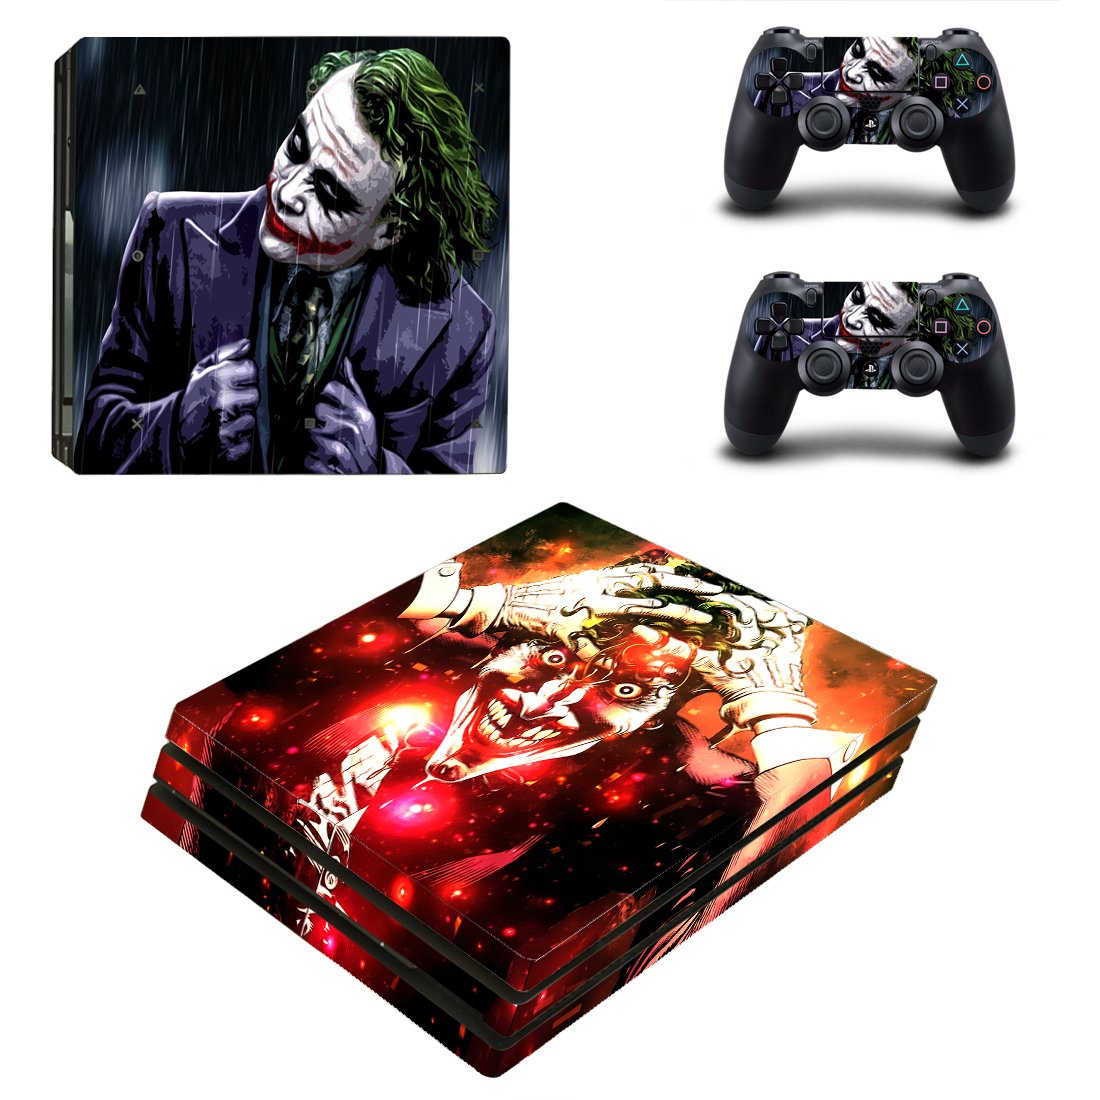 Joker PS4 Pro Skin Sticker Wrap